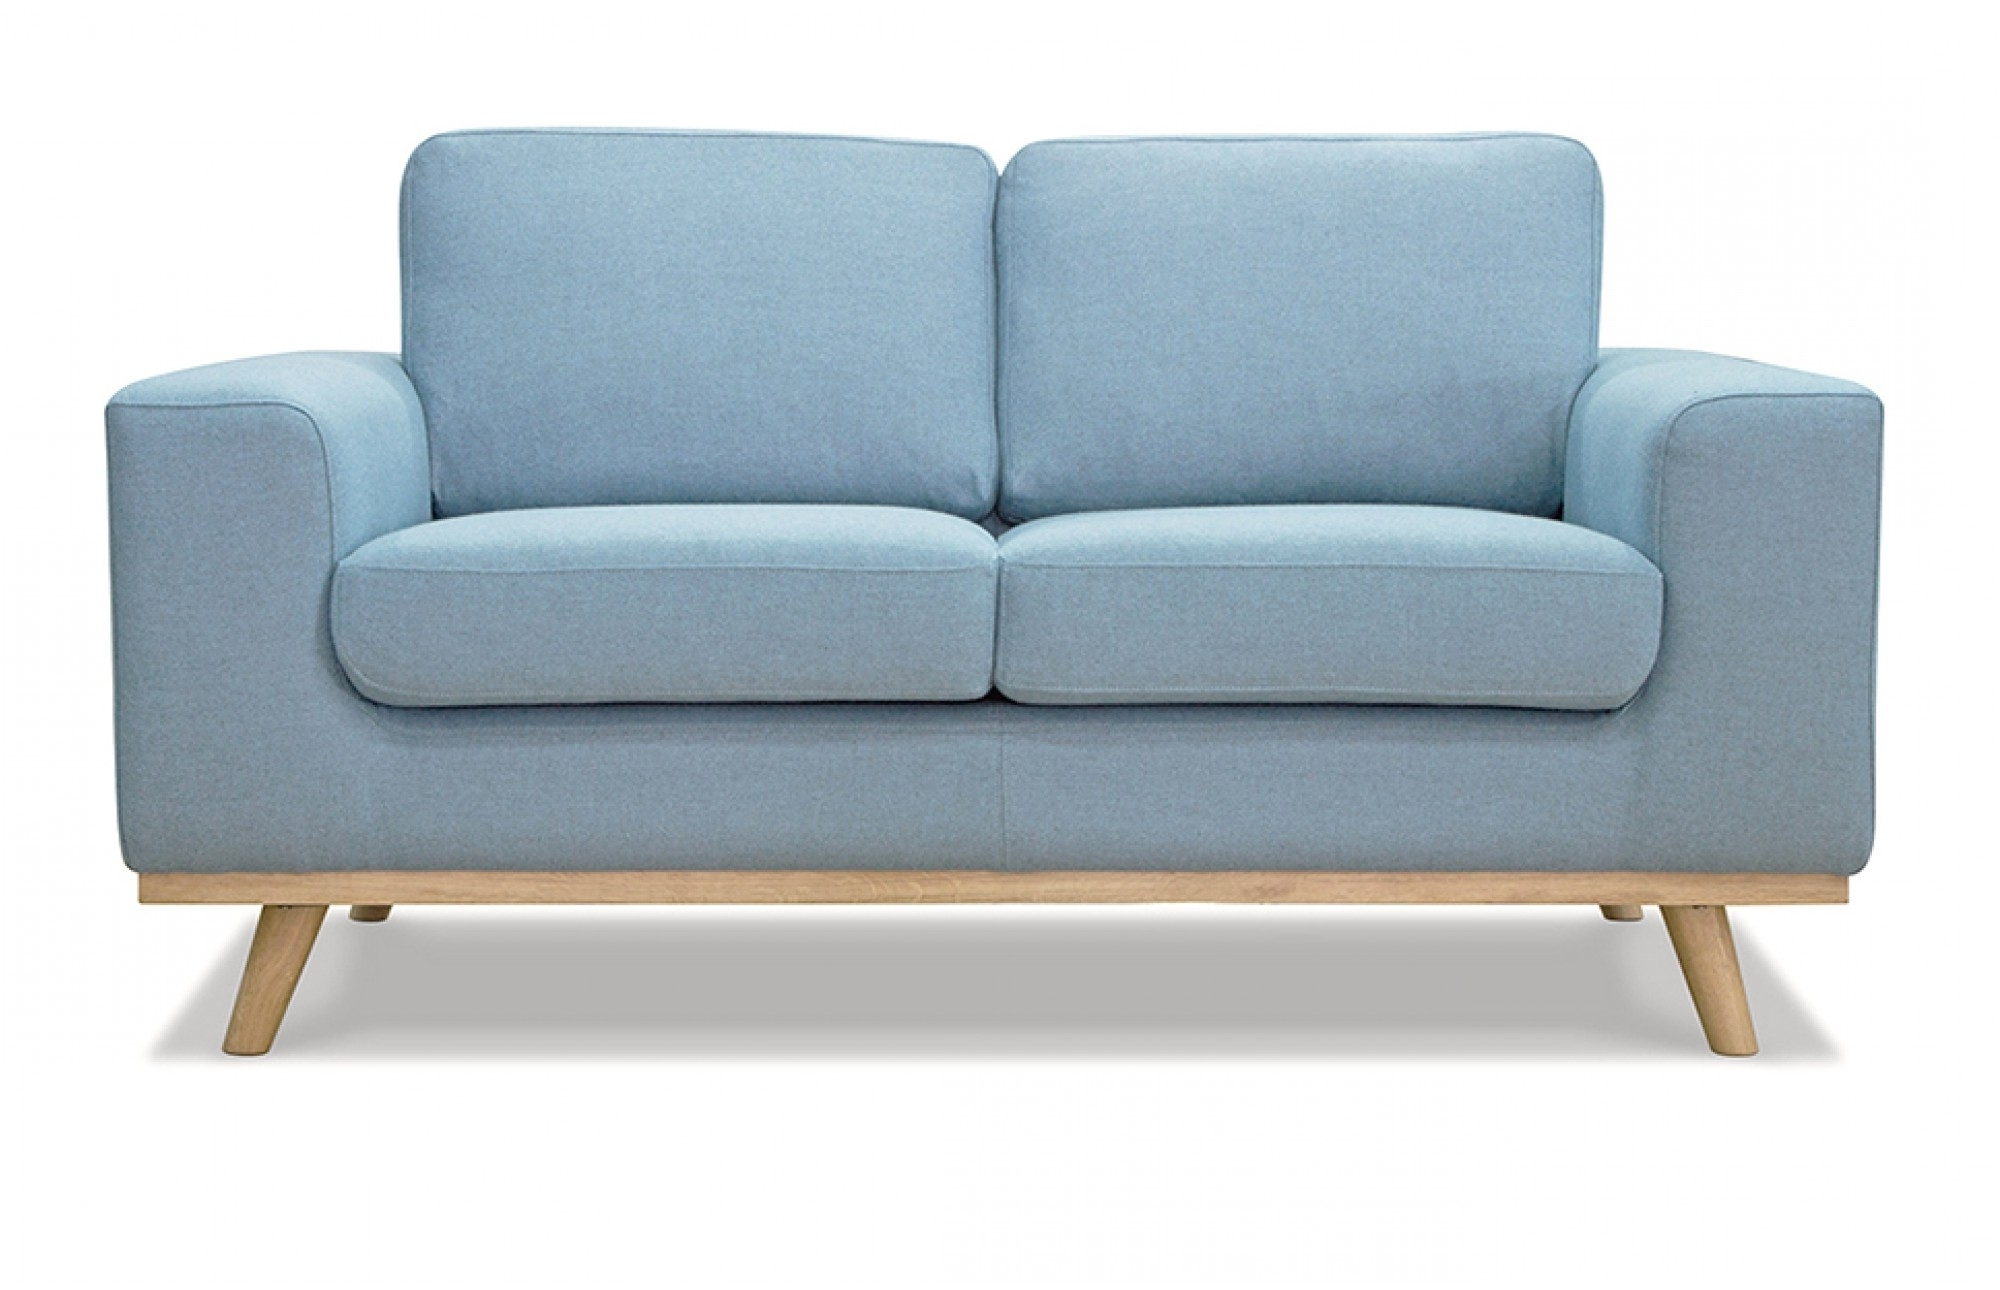 Two Seater Sofas With Famous 2 Seater Blue Sofa – Lounge Furniture – Out & Out (View 14 of 20)